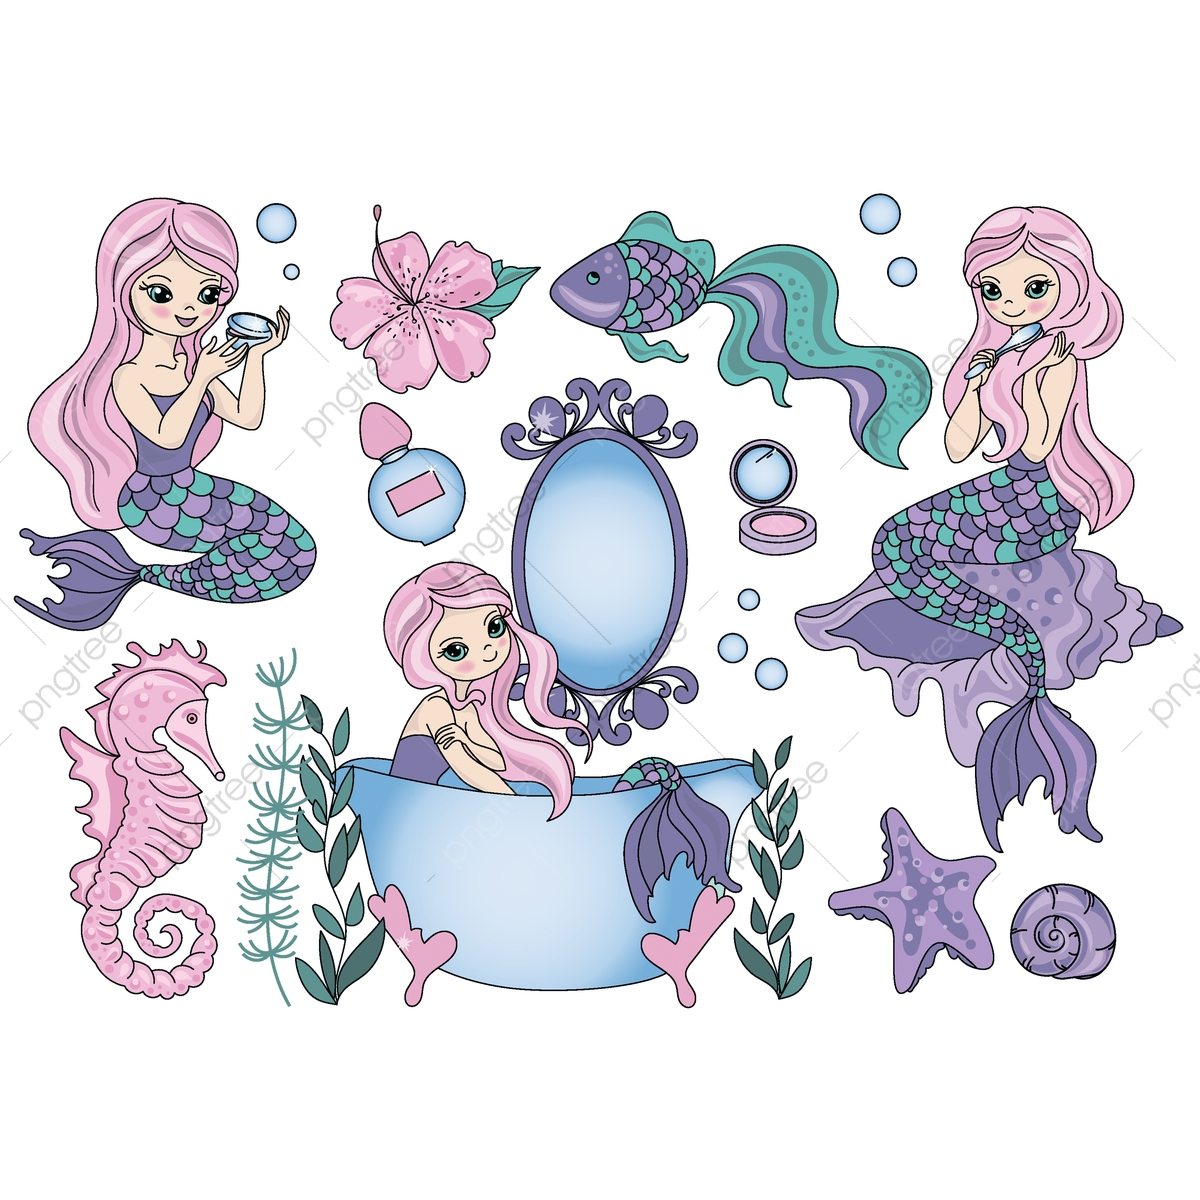 hight resolution of purple mermaid travel clipart color vector illustration set for scrapbooking babybook and digital print on card and photo children s albums png